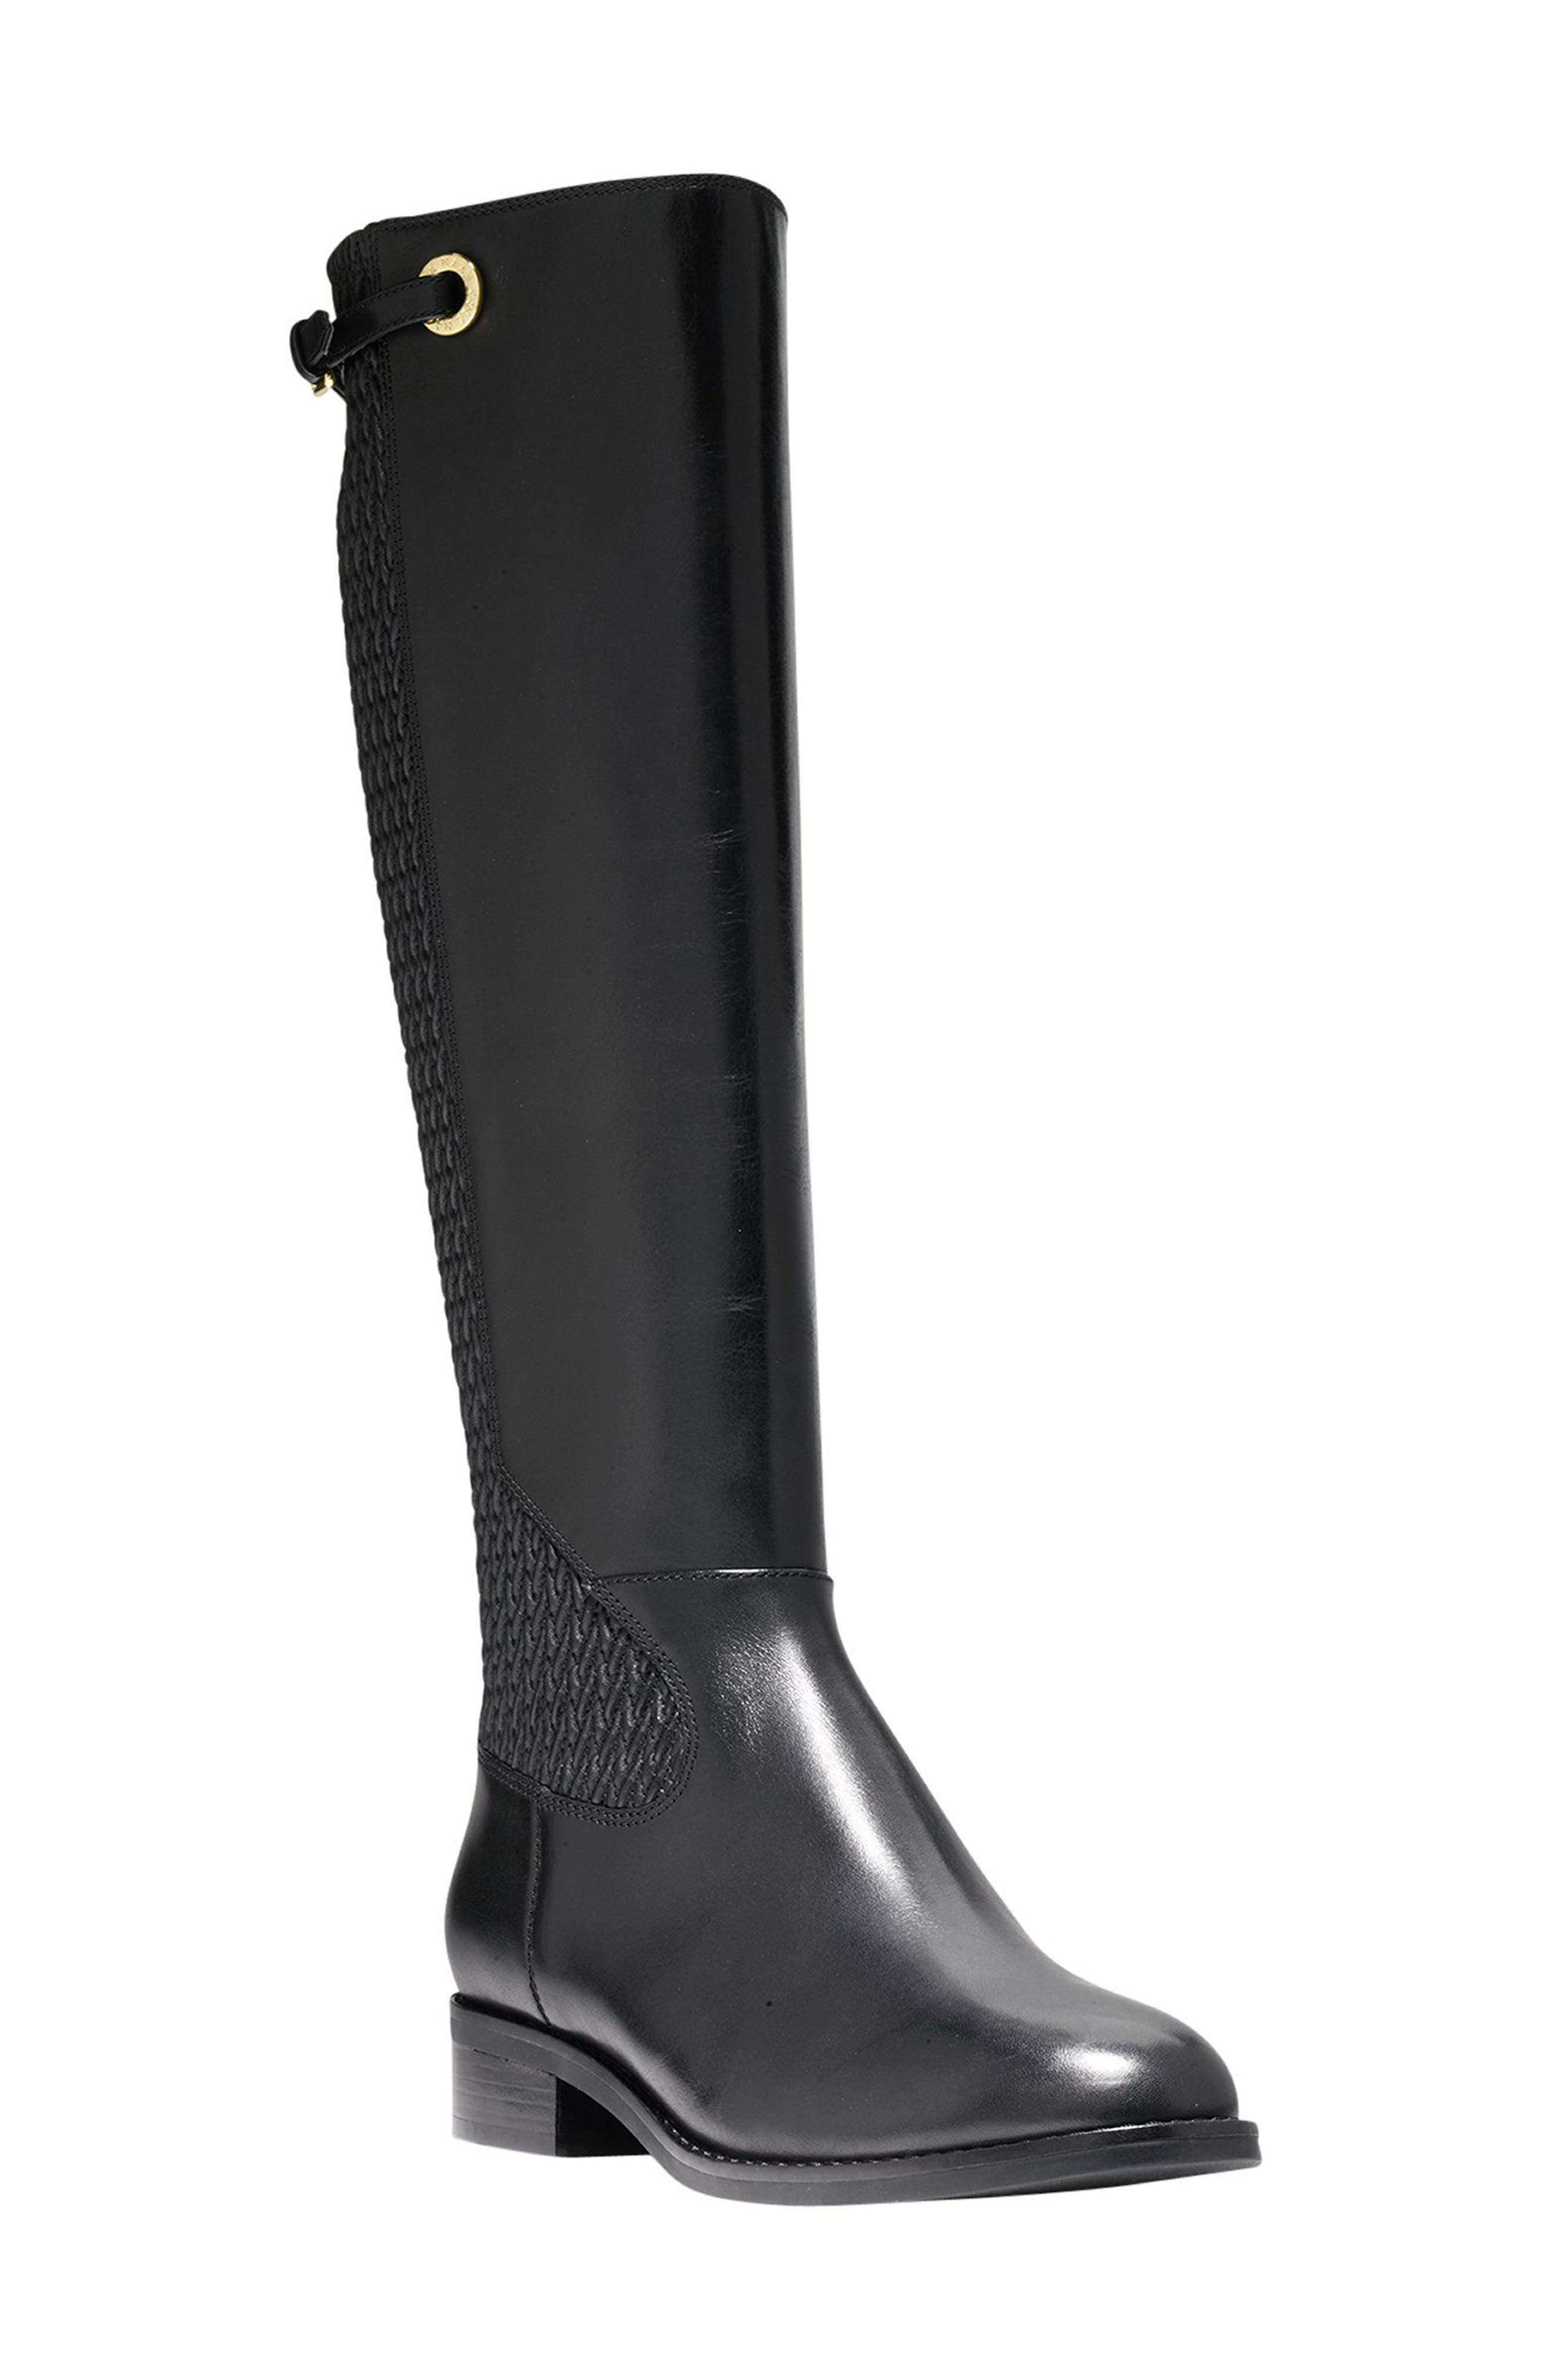 Alternate Image 1 Selected - Cole Haan Simona Tall Boot (Women)